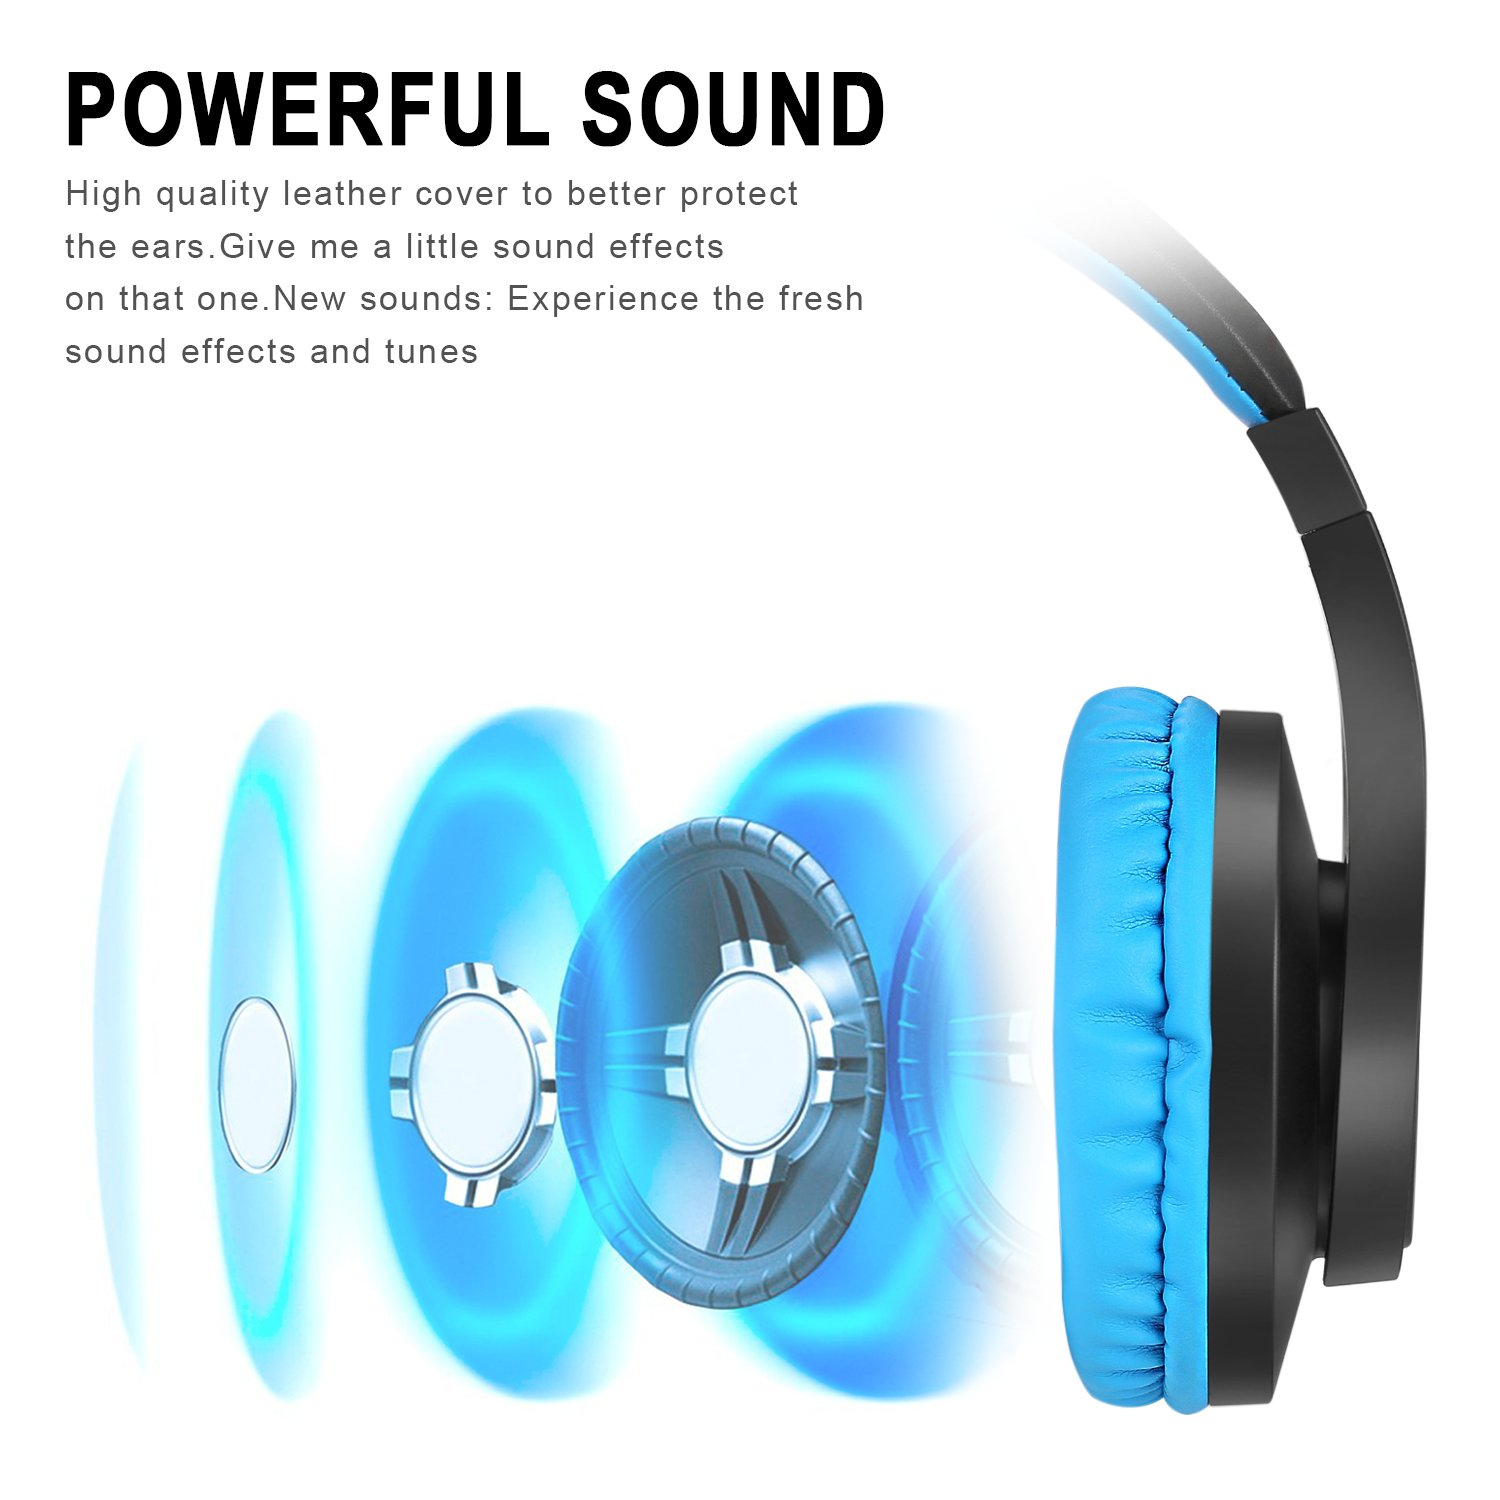 DIWUER Stereo Wired Gaming Headset for PS4 Xbox One 3.5mm Bass Over-Ear Headphones with Mic Noise Isolation for Laptop PC Mac iPad Phones (Black Blue) by DIWUER (Image #2)